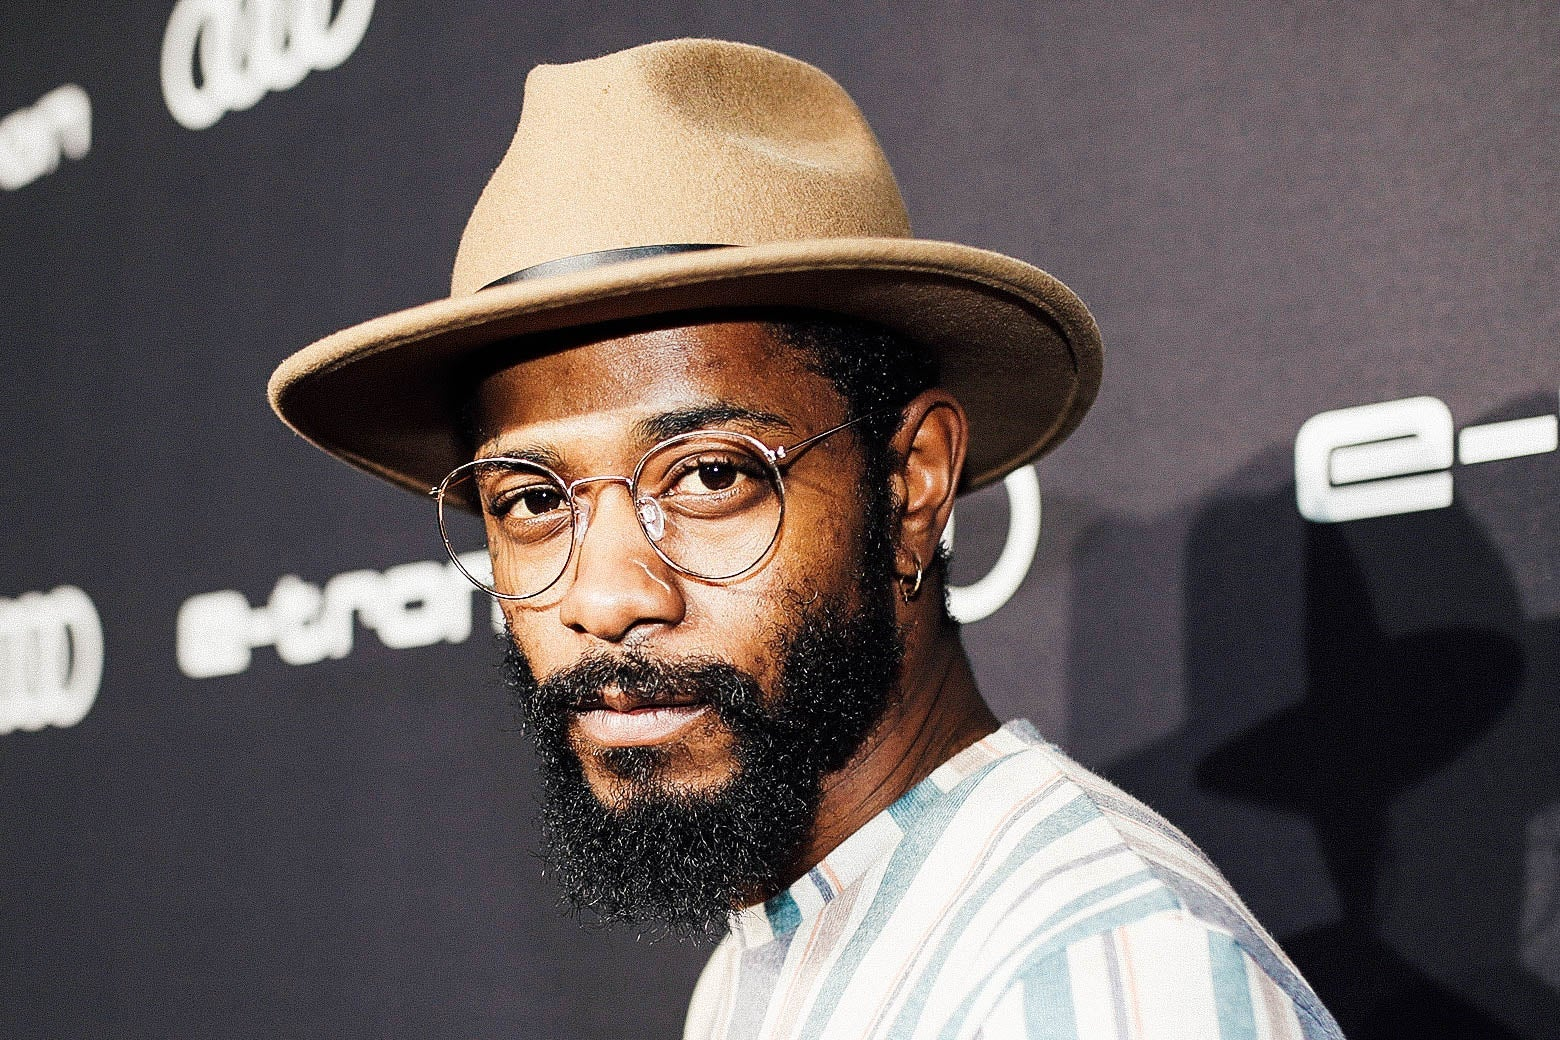 Lakeith Stanfield's Smooth, Quirky Charm Earns Our Attention